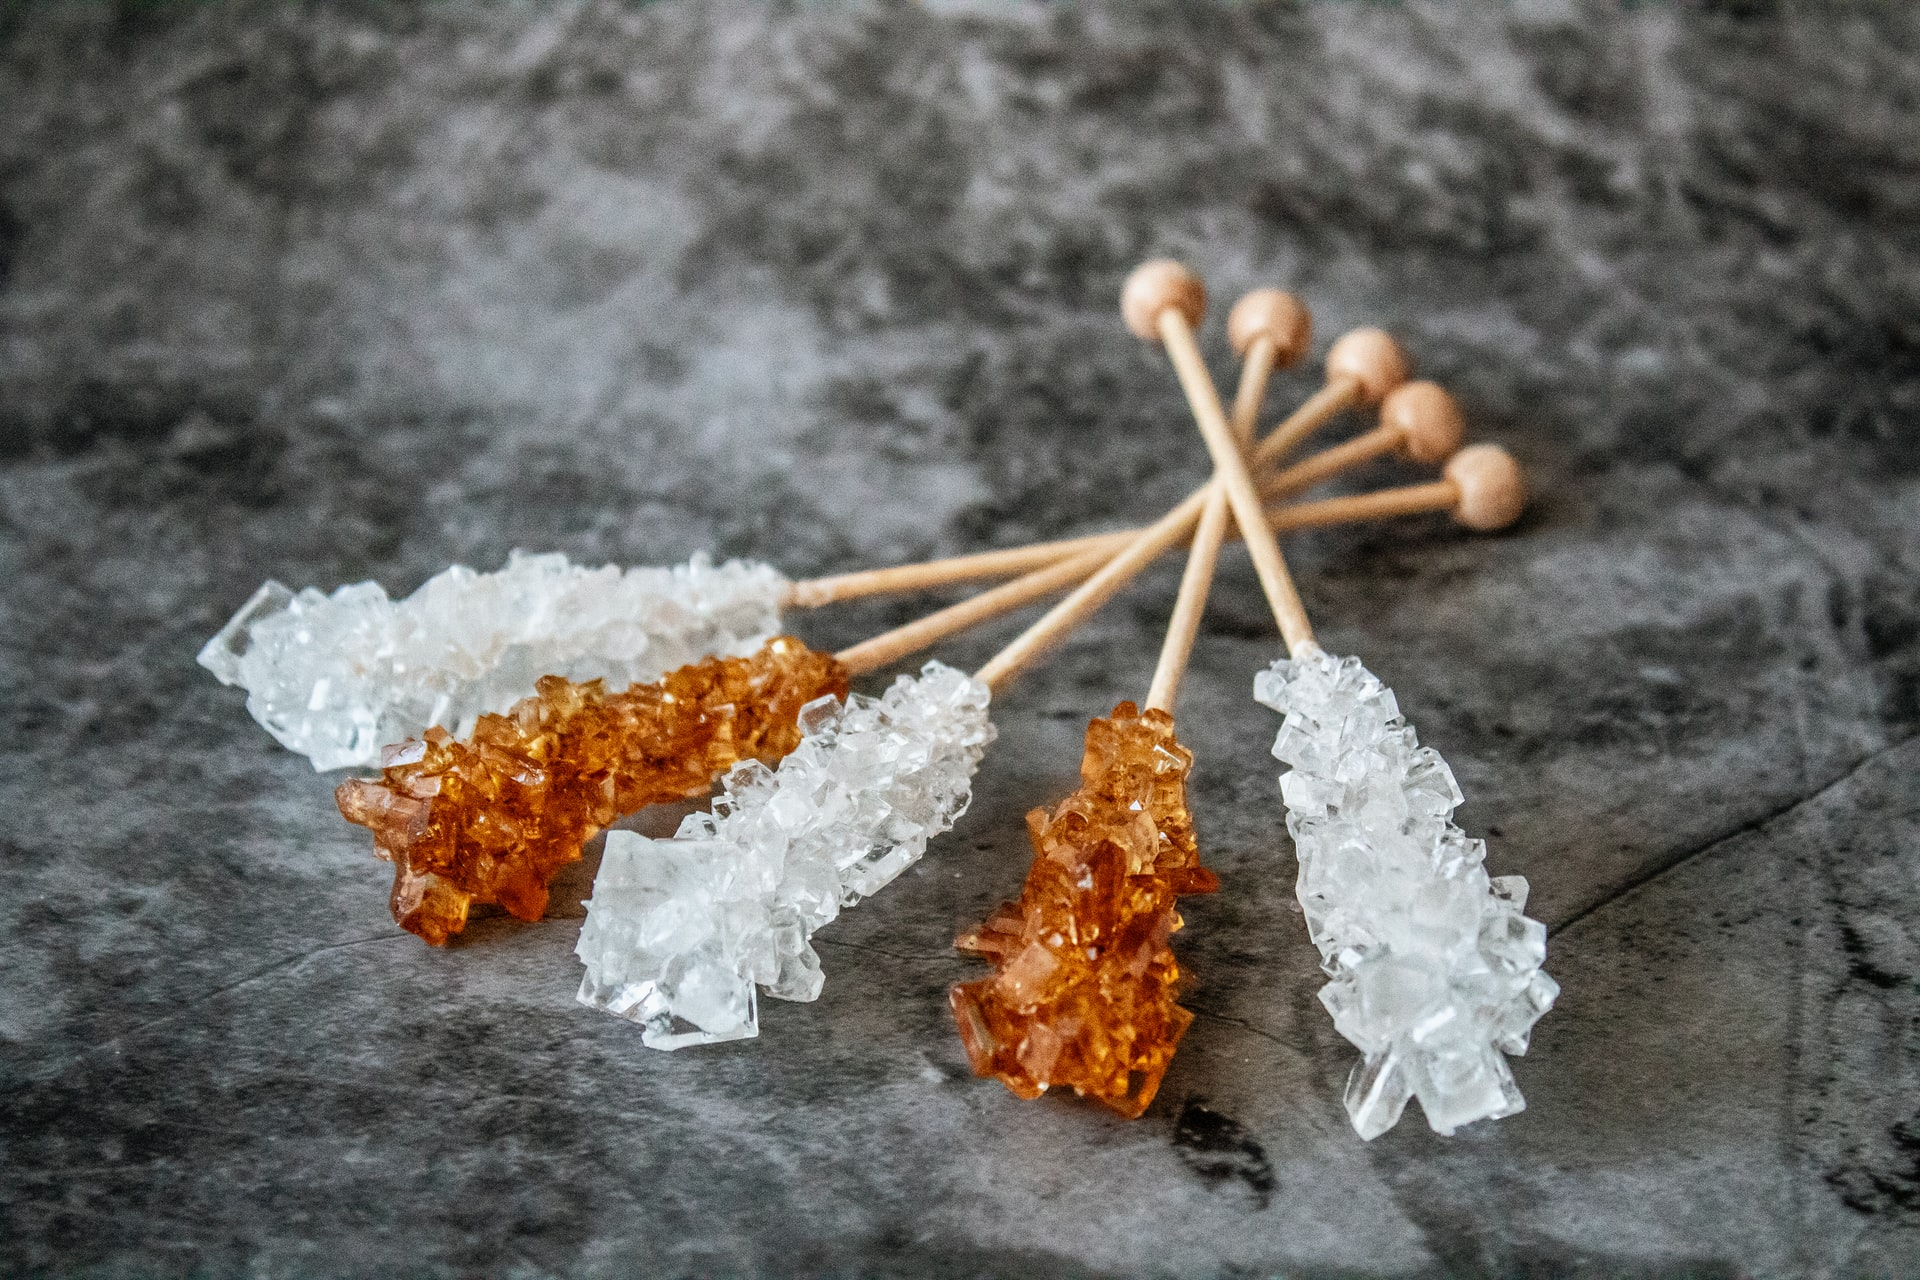 Sucrose intolerance is due to eating foods that contain sucrose like this rock candy-if you are low in the enzyme to digest sucrose-symptoms occur